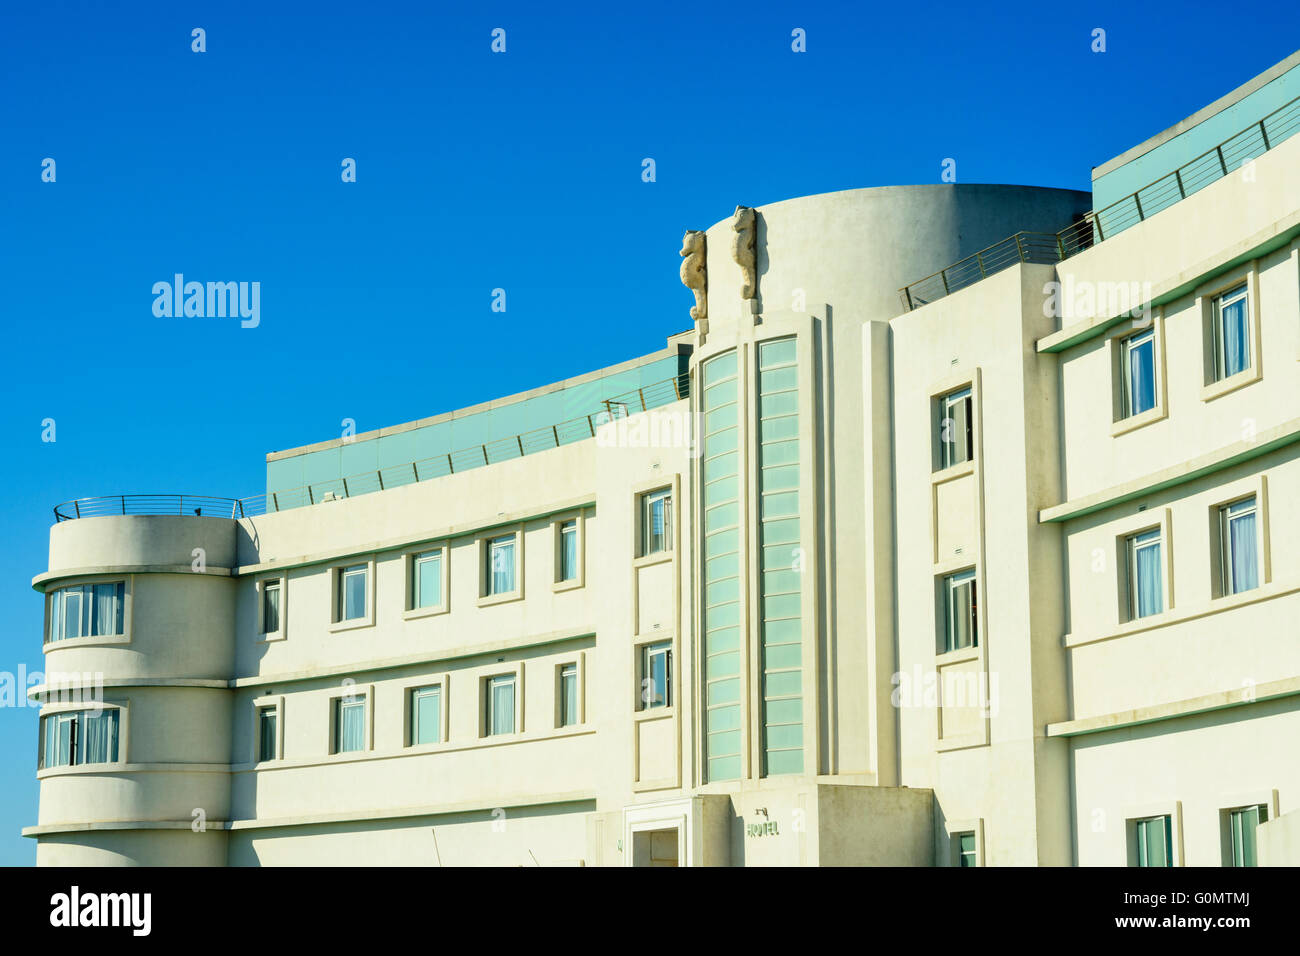 The Midland Hotel in Morecambe Lancashire England, an Art Deco masterpiece first opened in 1933 and restored in - Stock Image